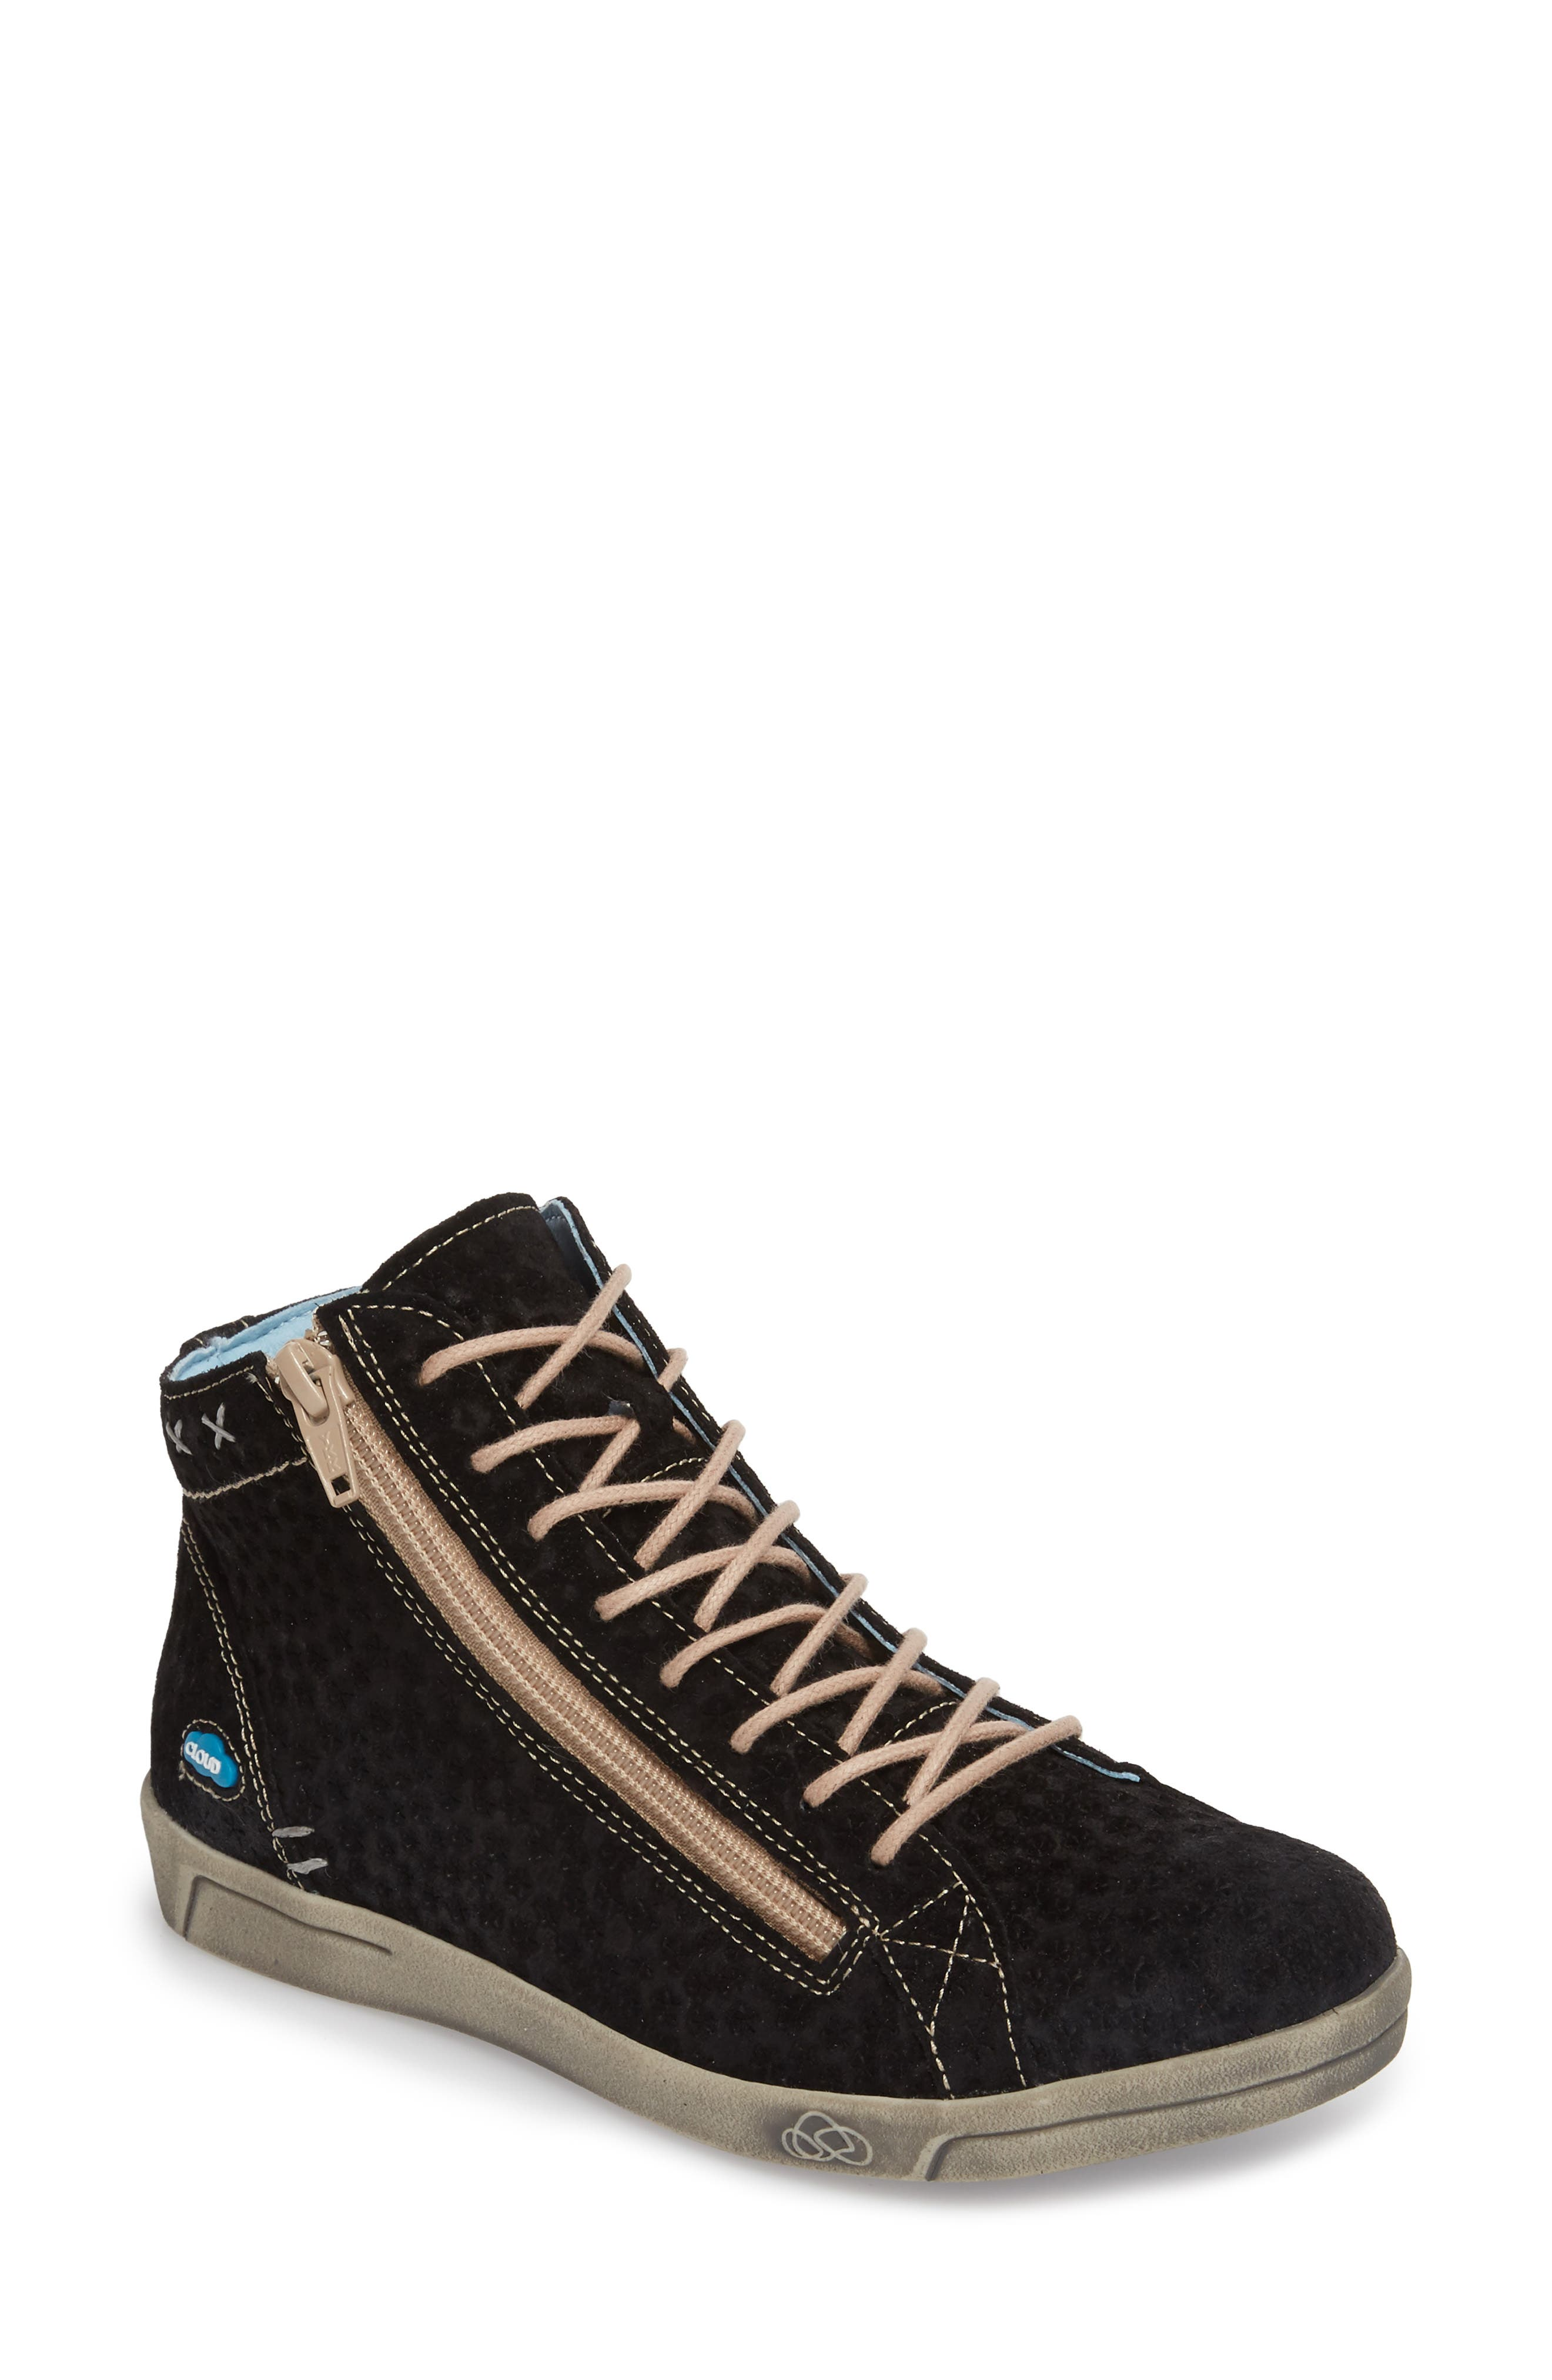 Aika Star Perforated High Top Sneaker,                             Main thumbnail 1, color,                             BLACK LEATHER